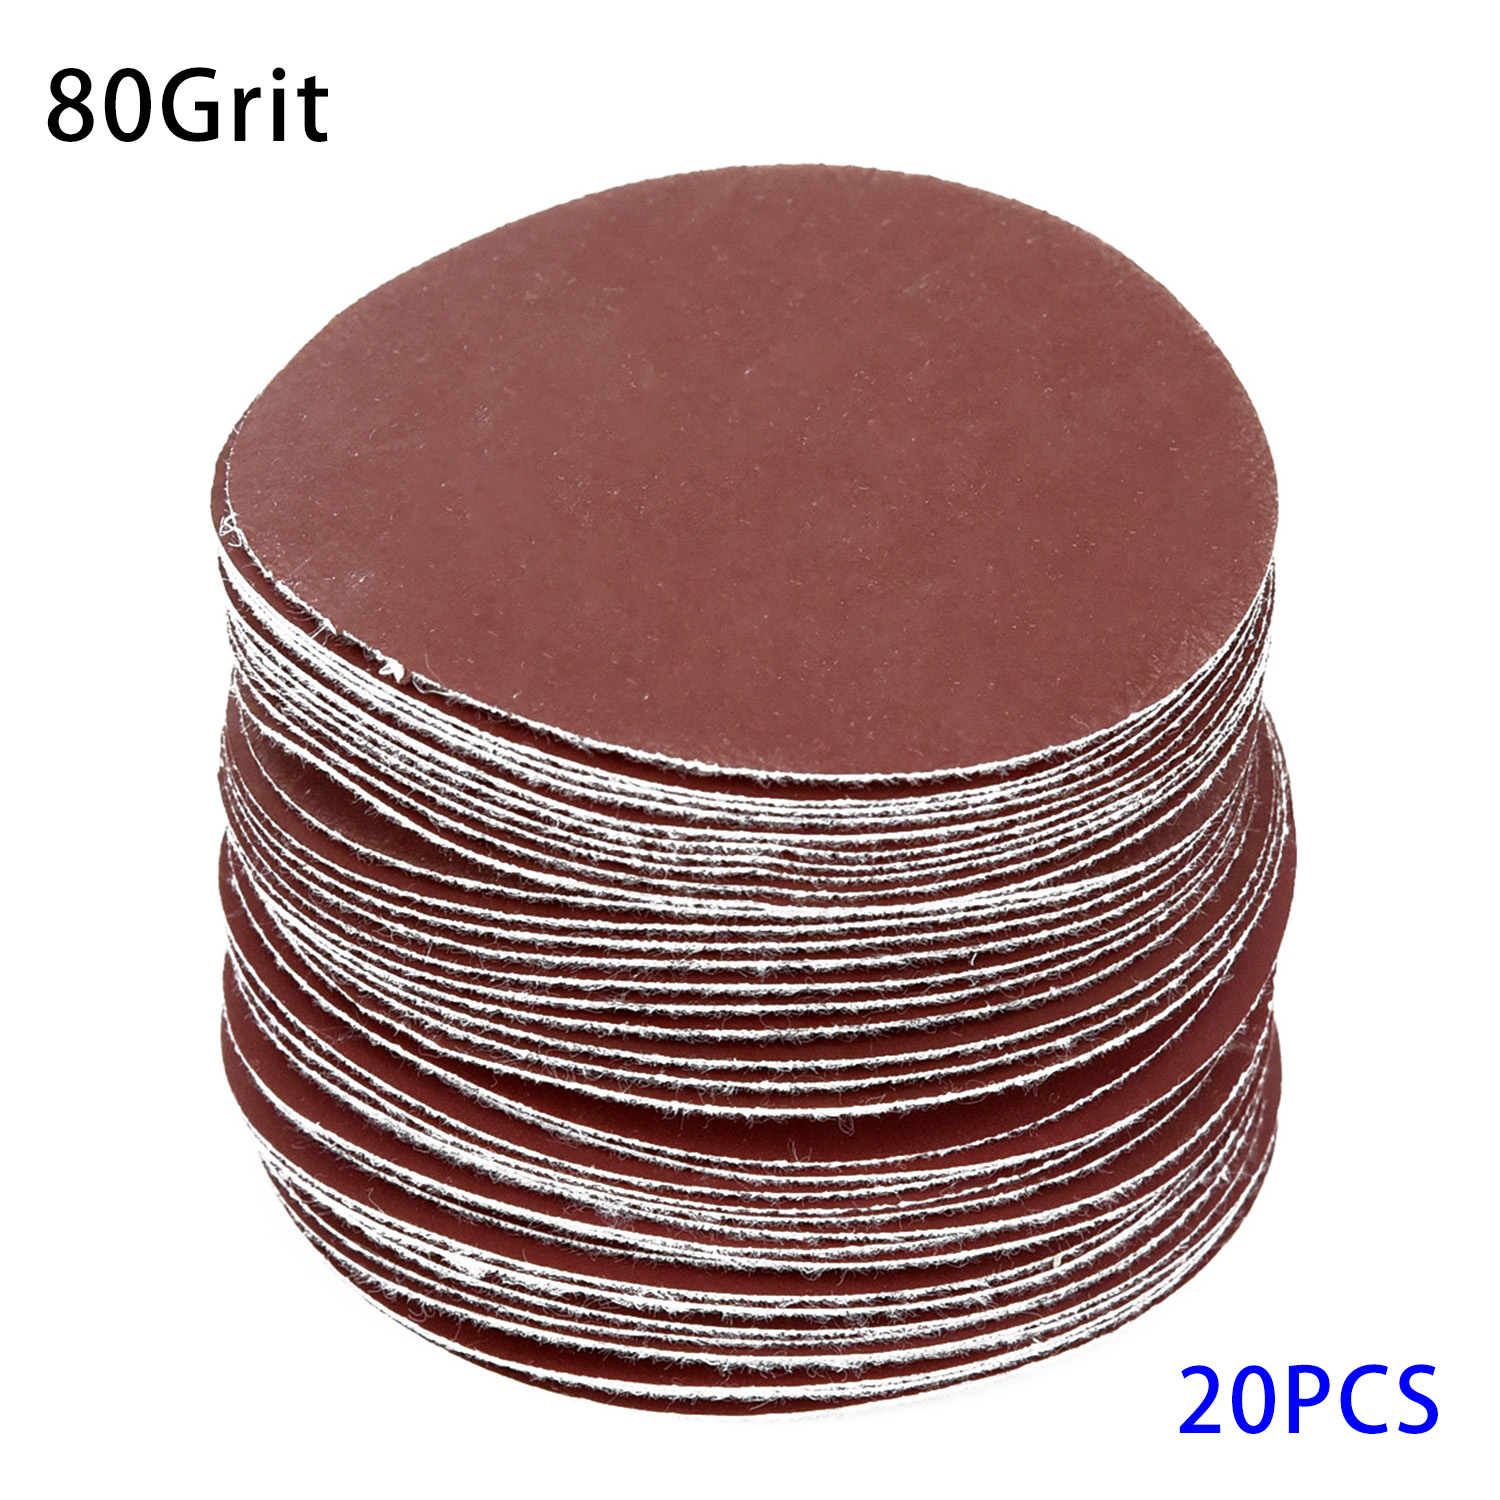 20pcs Hook Loop Sandpapers Cleaning Polishing Woodworking Wooden Metal Surfaces Polisher Sanding Pads